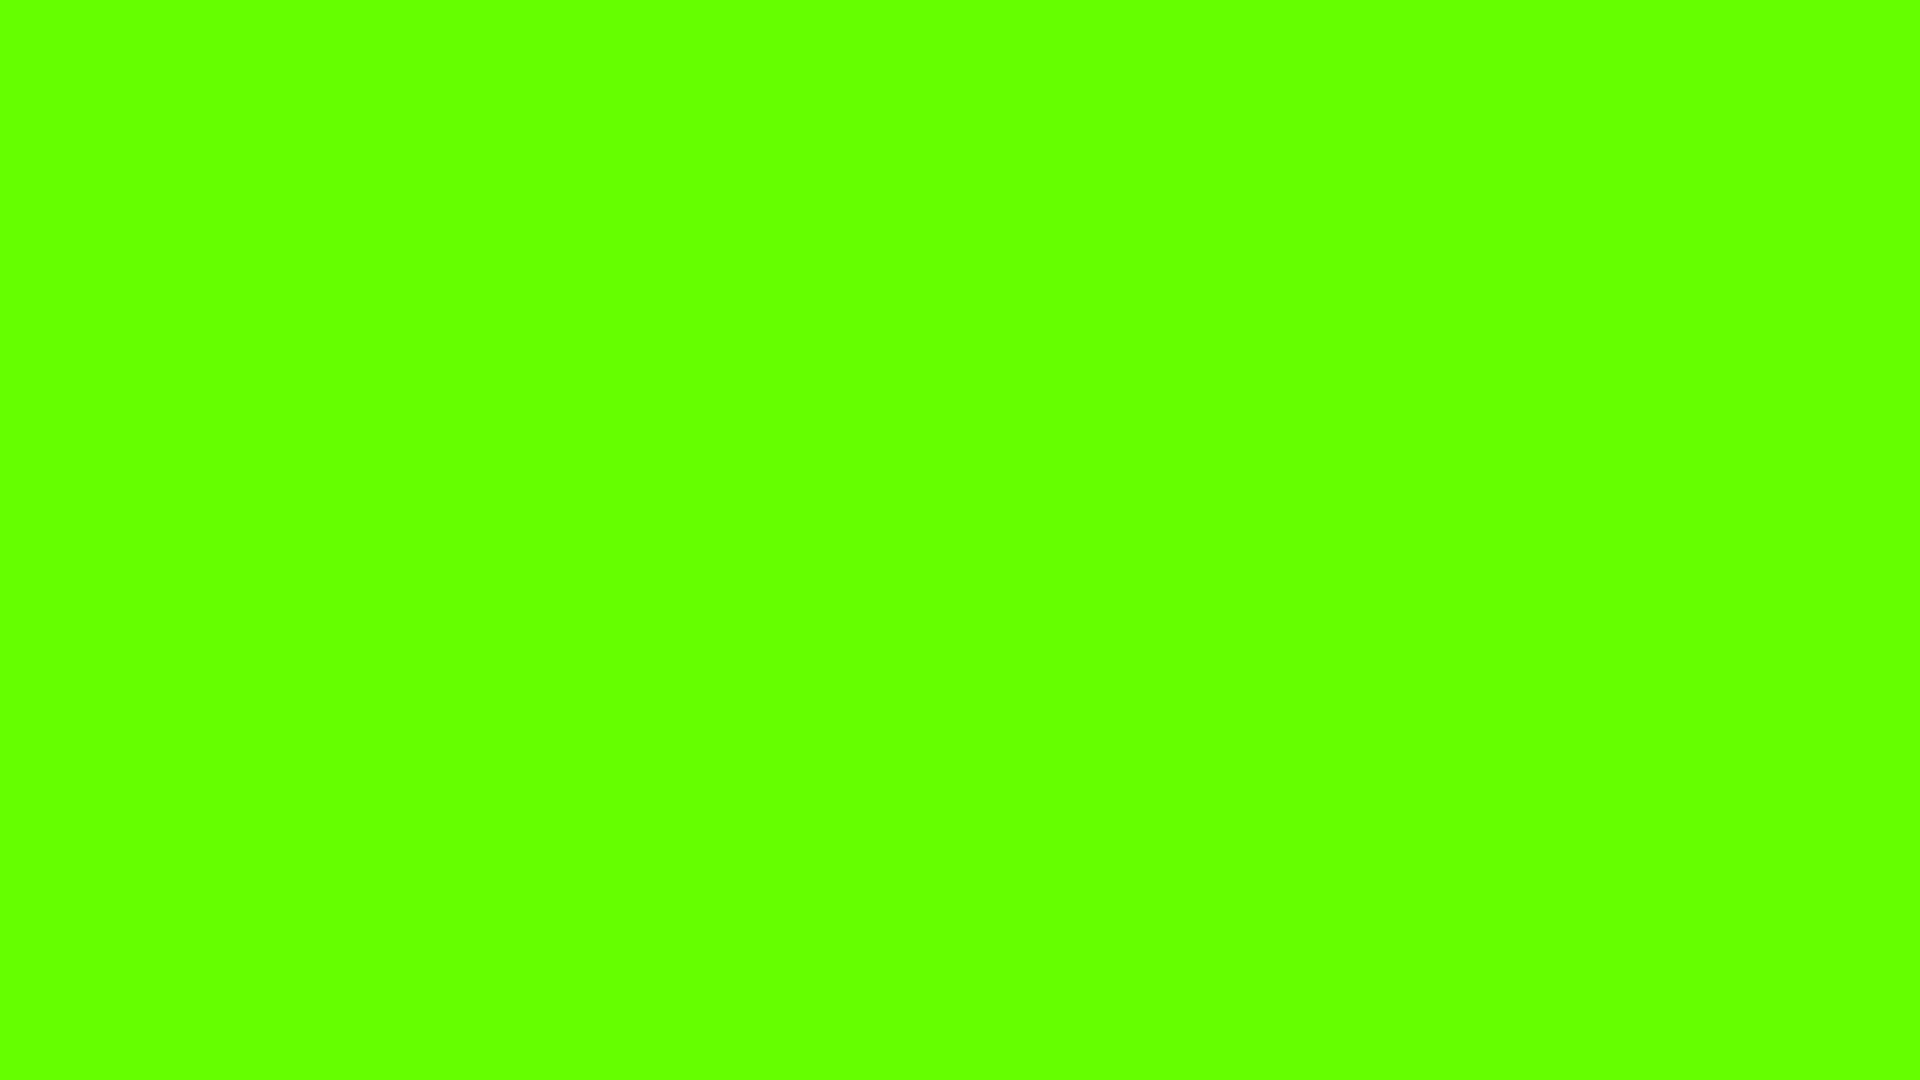 Solid Bright Green Background 1920x1080 bright green solid 1920x1080